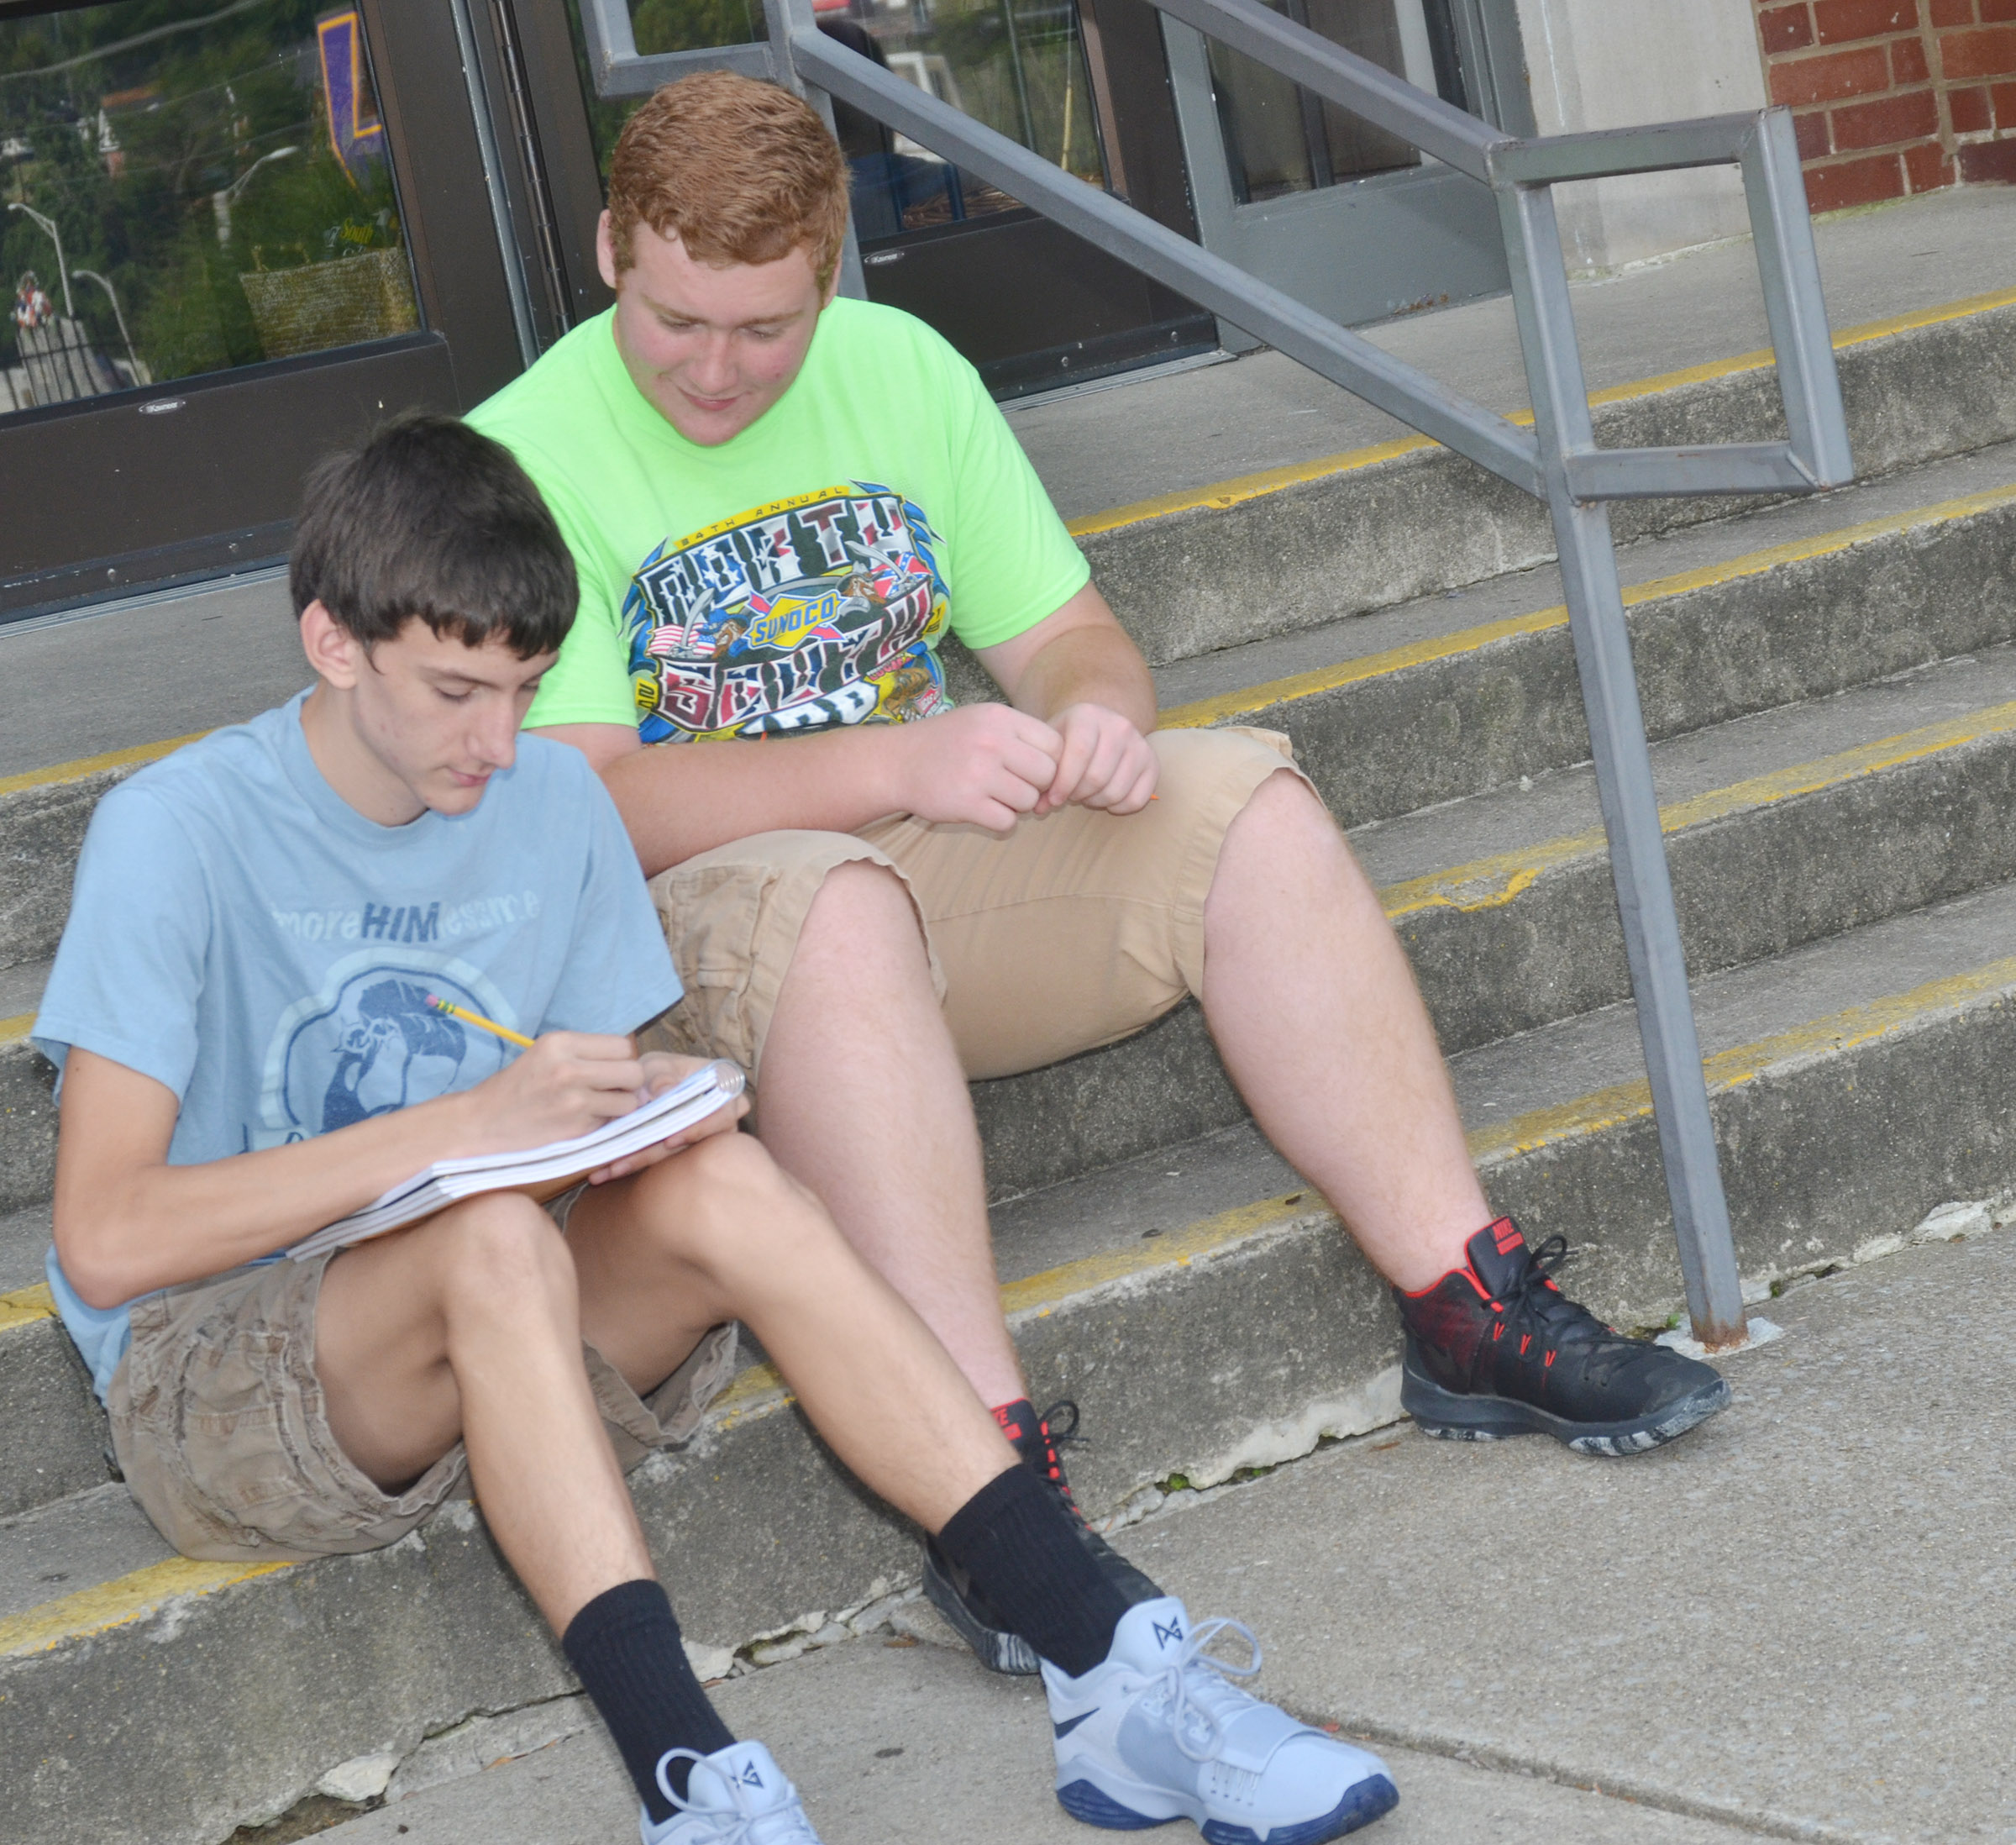 CHS juniors Evan McAninch, at left, and Spencer Swafford work together to describe their surroundings as they study the concept of contextualization.